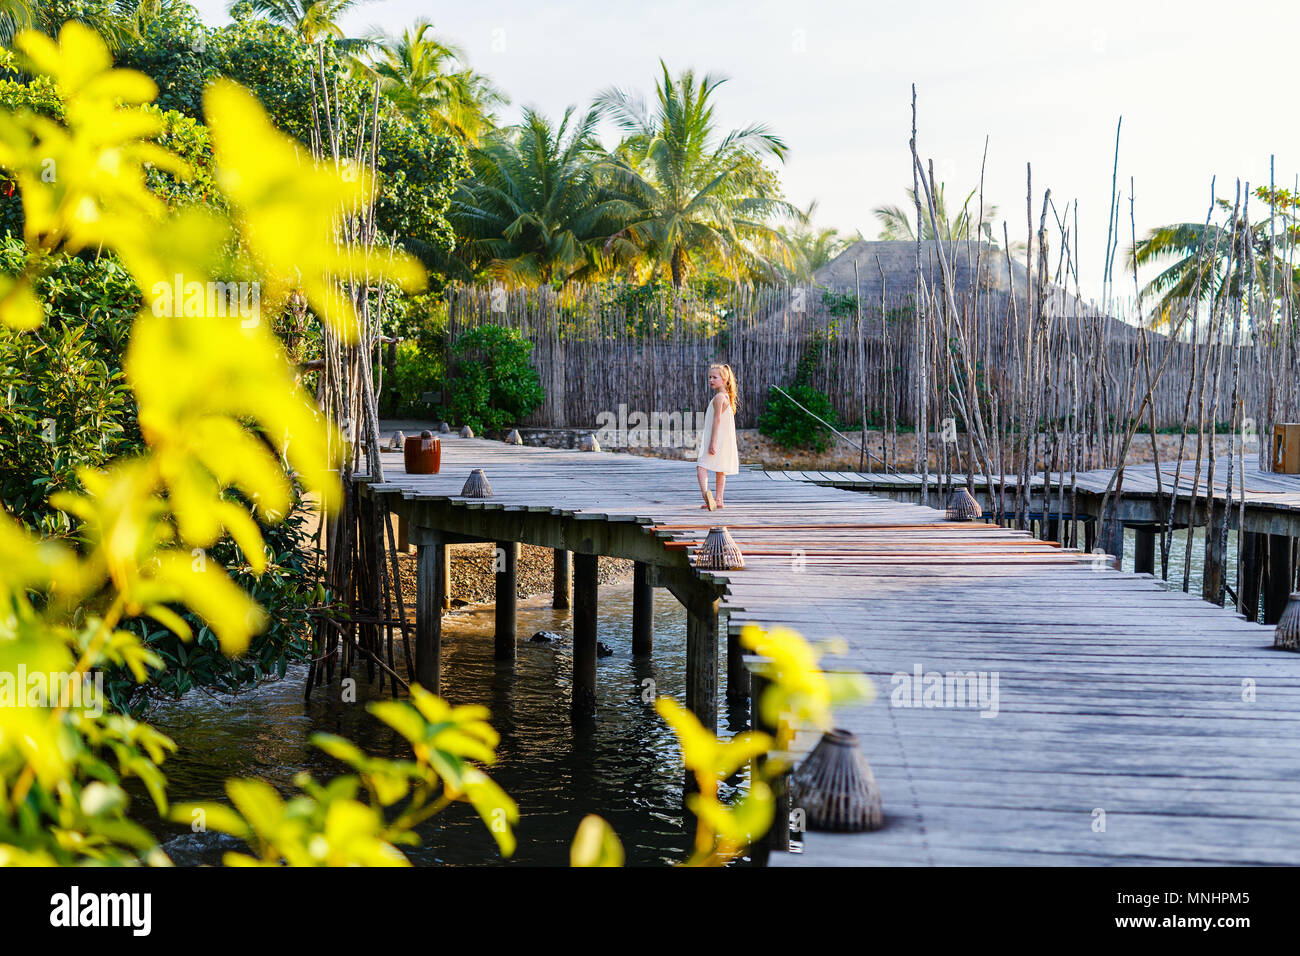 Little girl walking on wooden footbridge during summer vacation at luxury resort - Stock Image